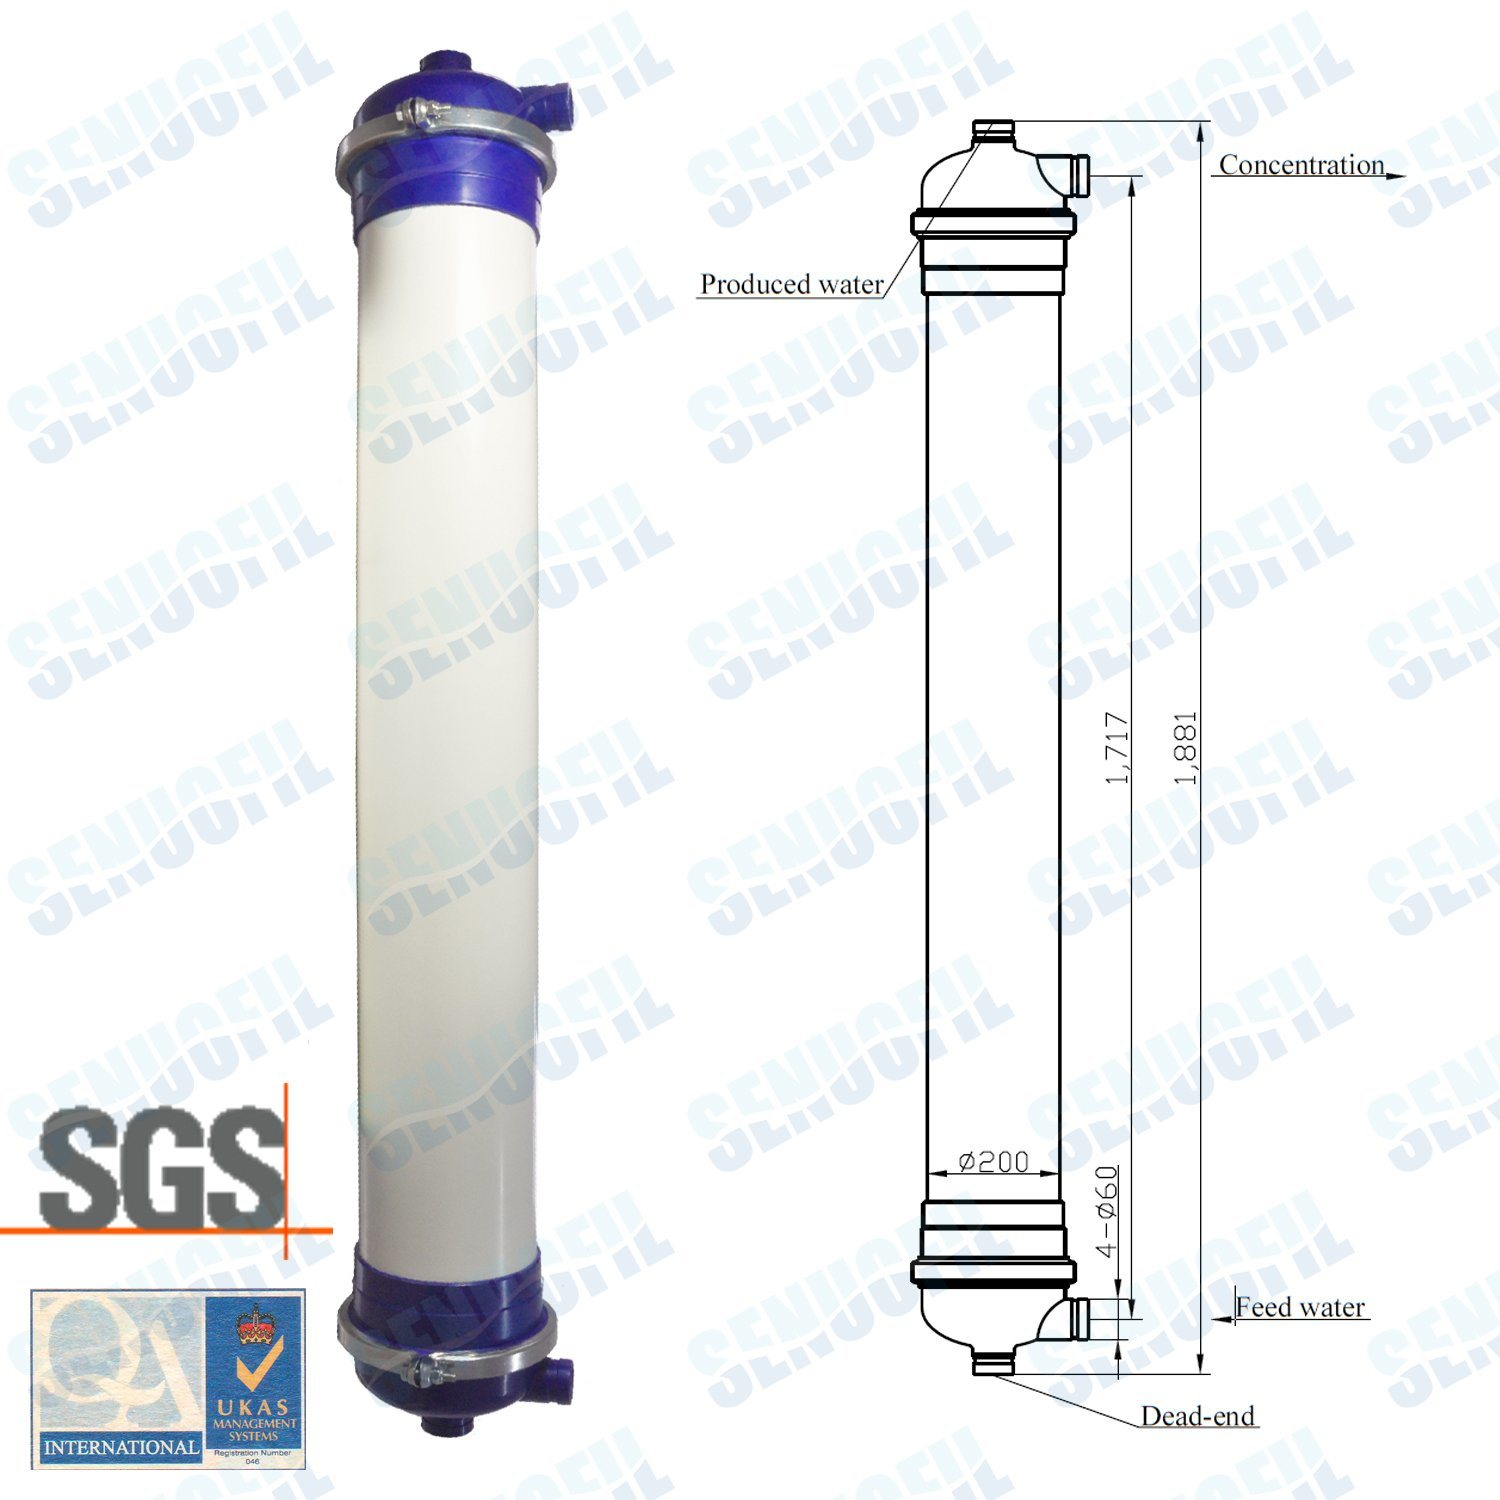 8 Inch Inside-out Pes UF Membrane Module for Water Treatment